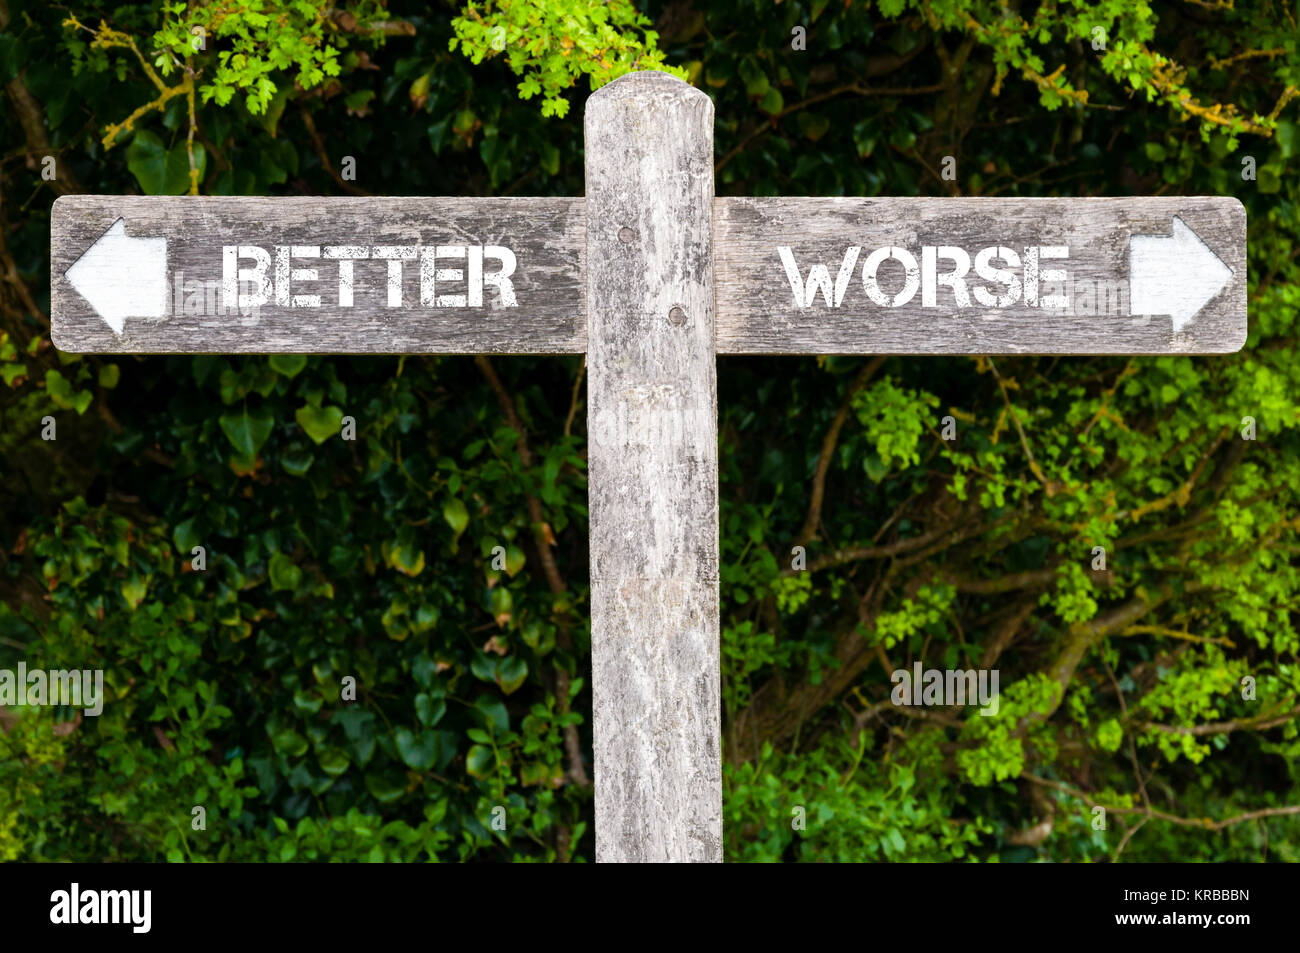 BETTER versus WORSE directional signs Stock Photo